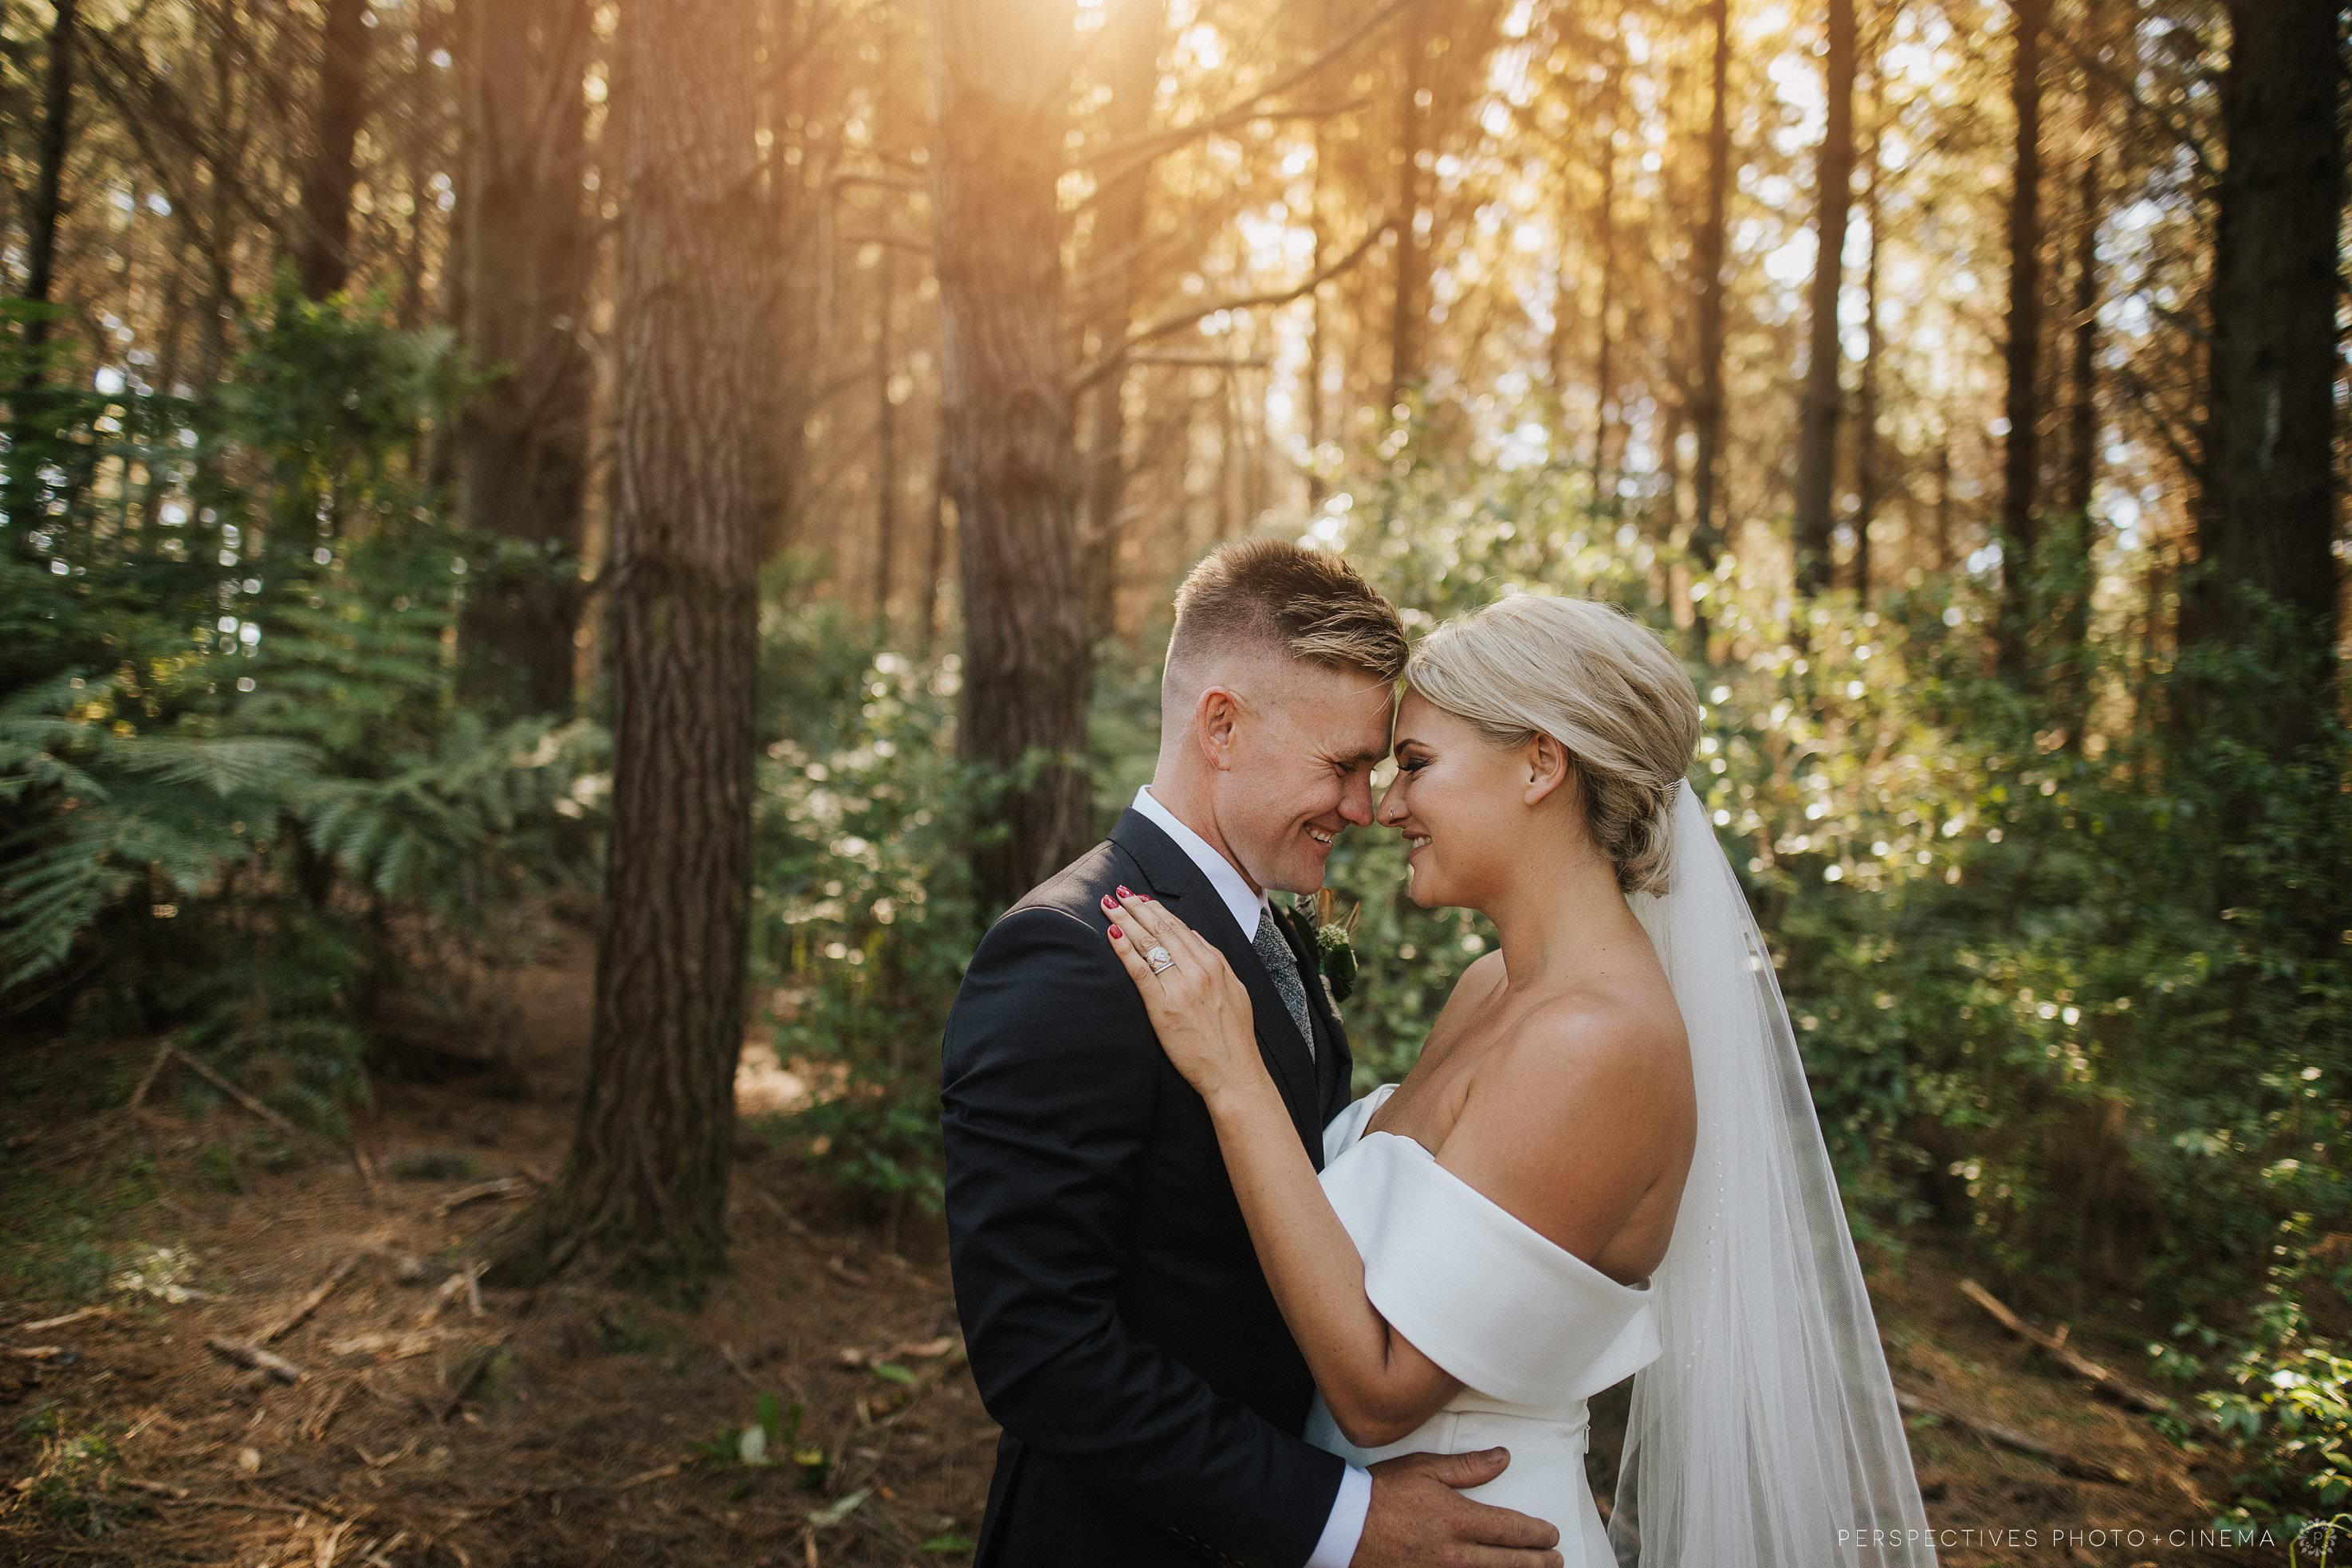 Hunting Lodge wedding photos